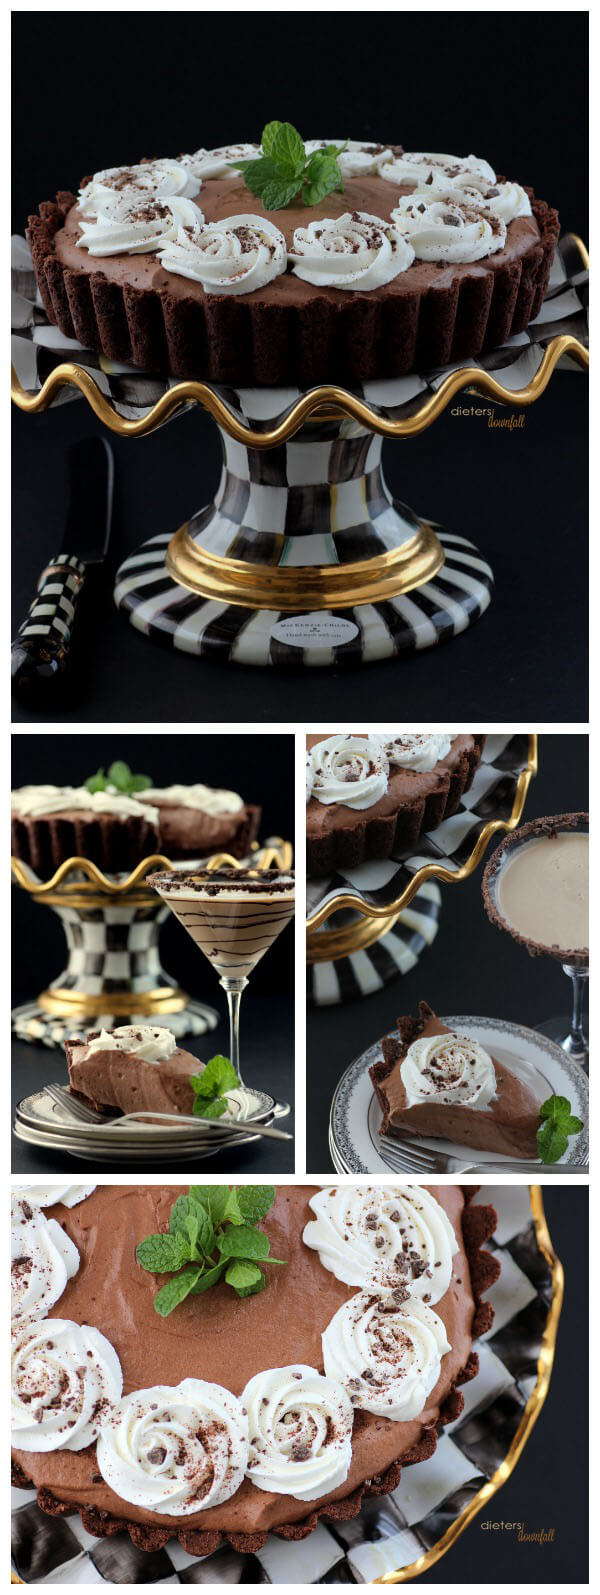 Mint. Chocolate. Cookie. Mousse. Martini. Devour! from #DietersDownfall.com